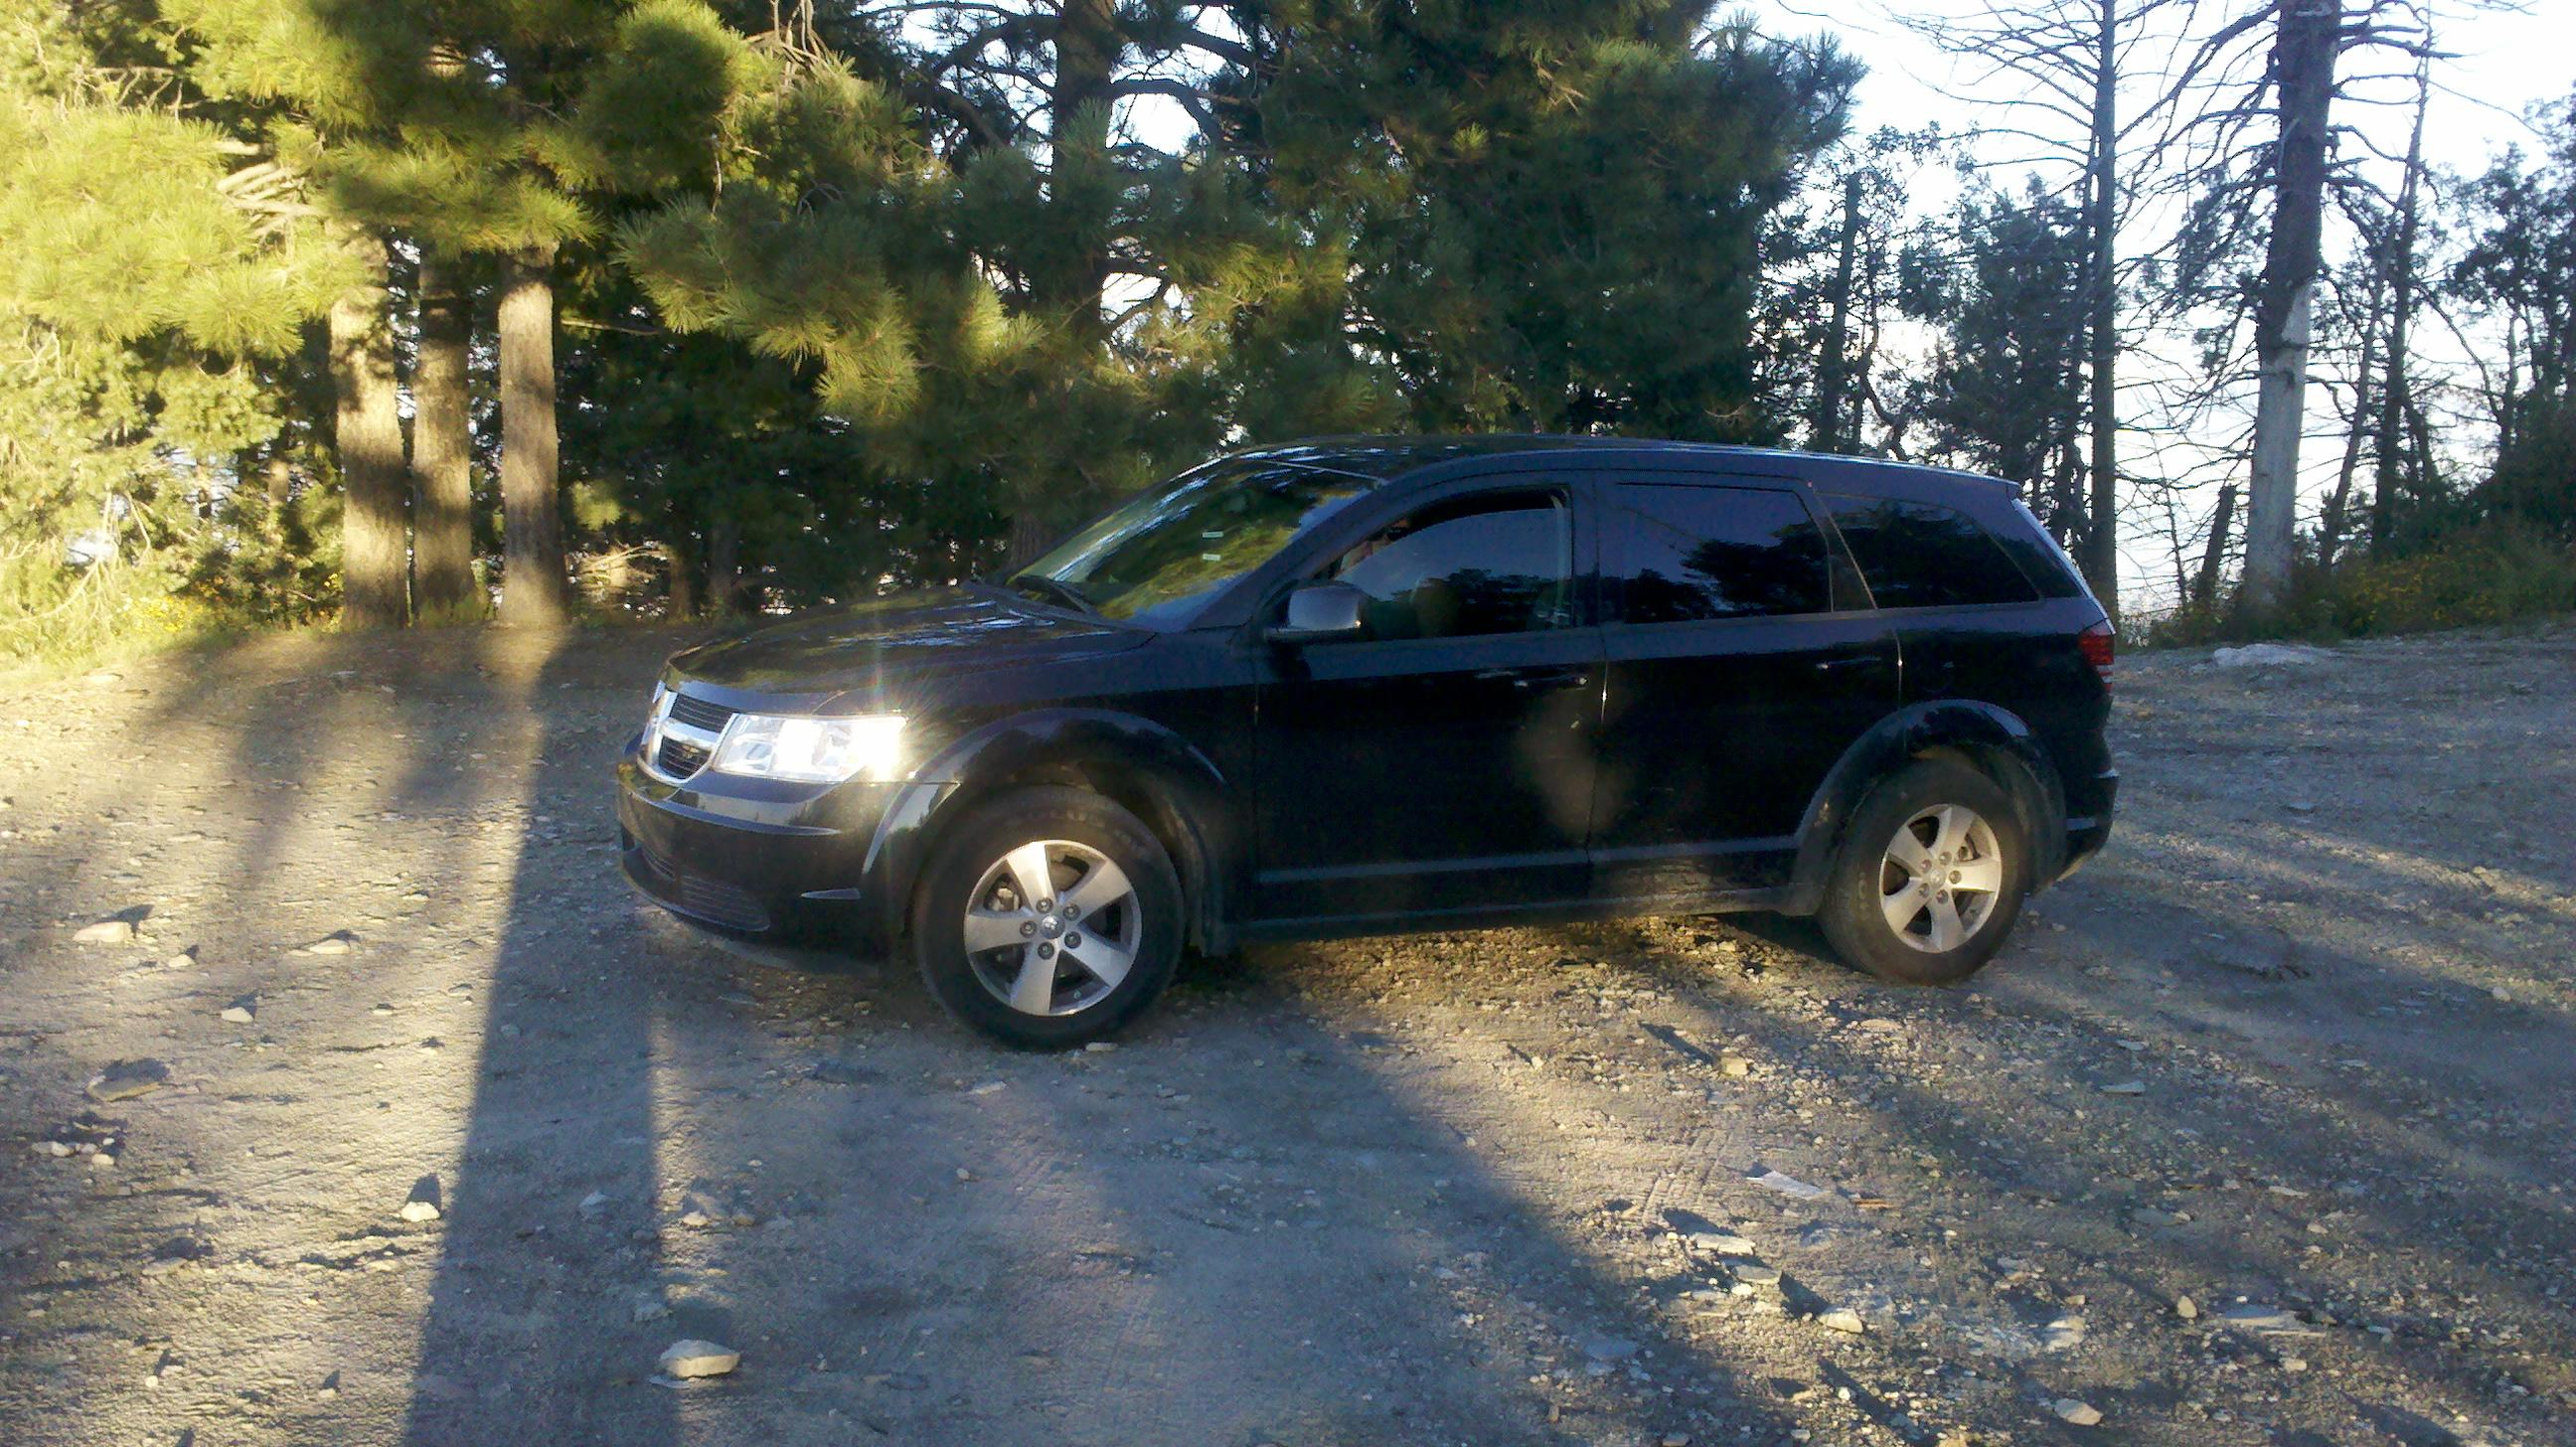 Makavilli's 2009 Dodge Journey